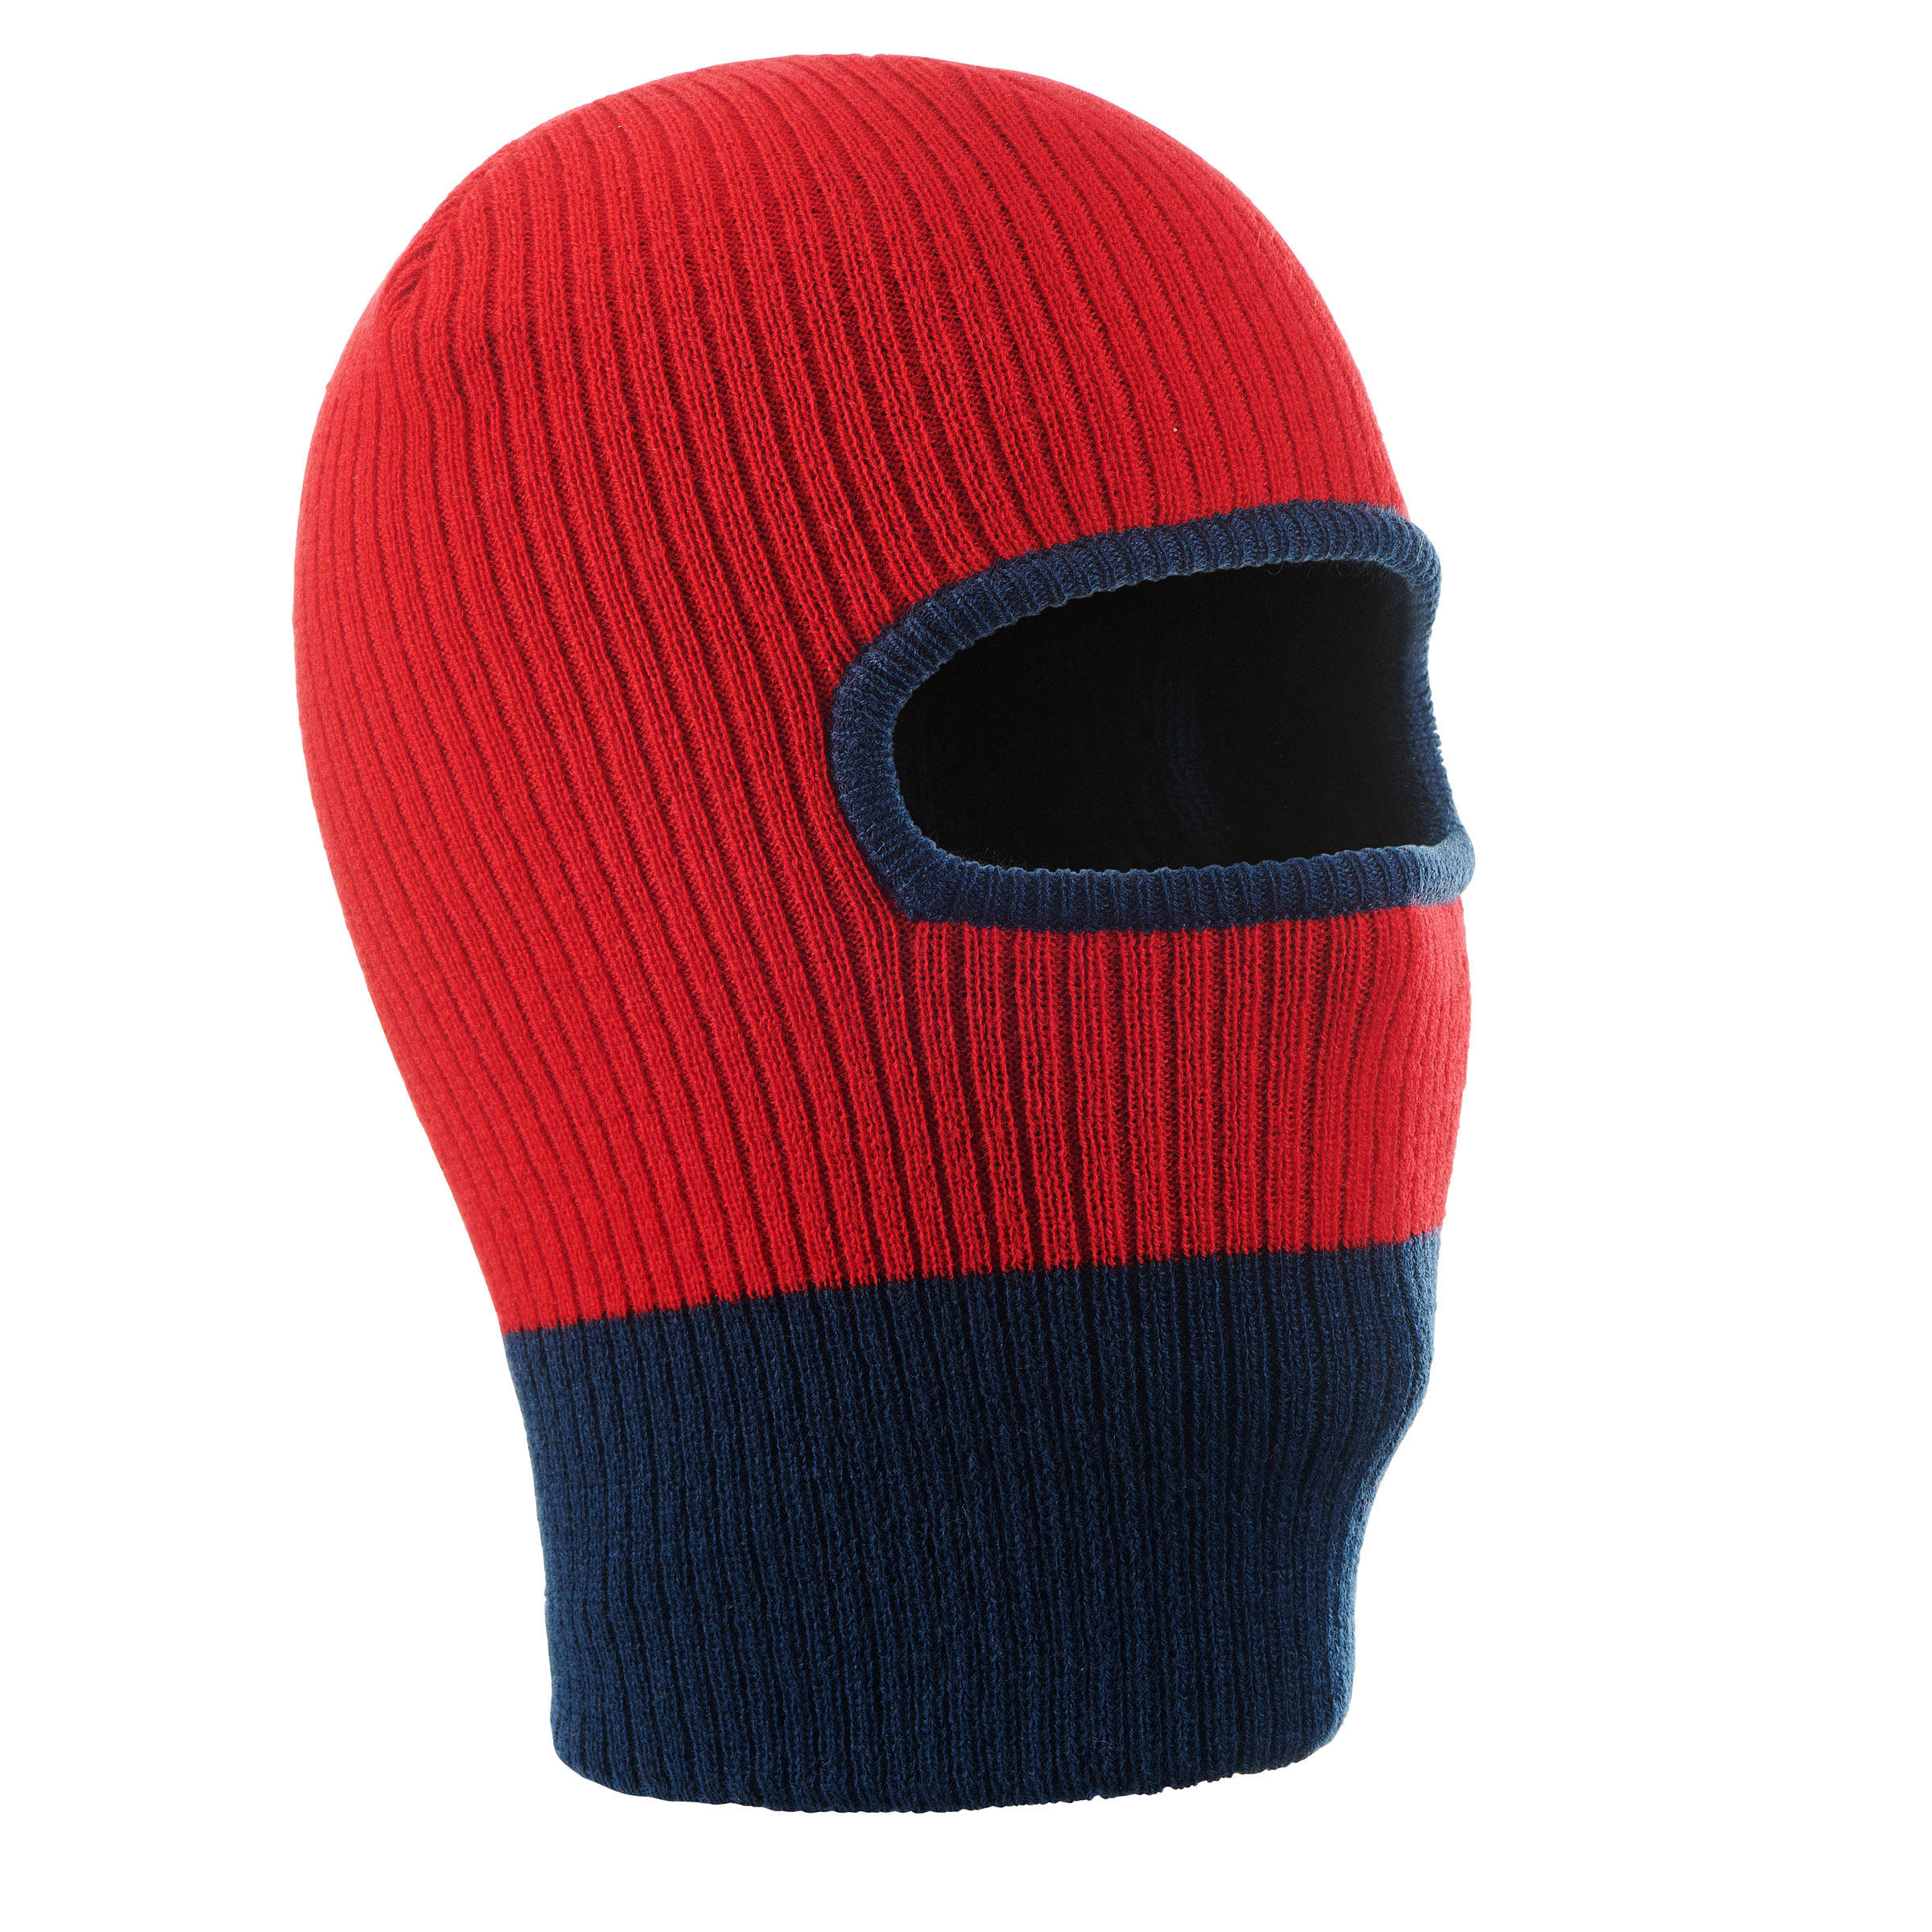 KIDS' KNITTED BALACLAVA RED BLUE